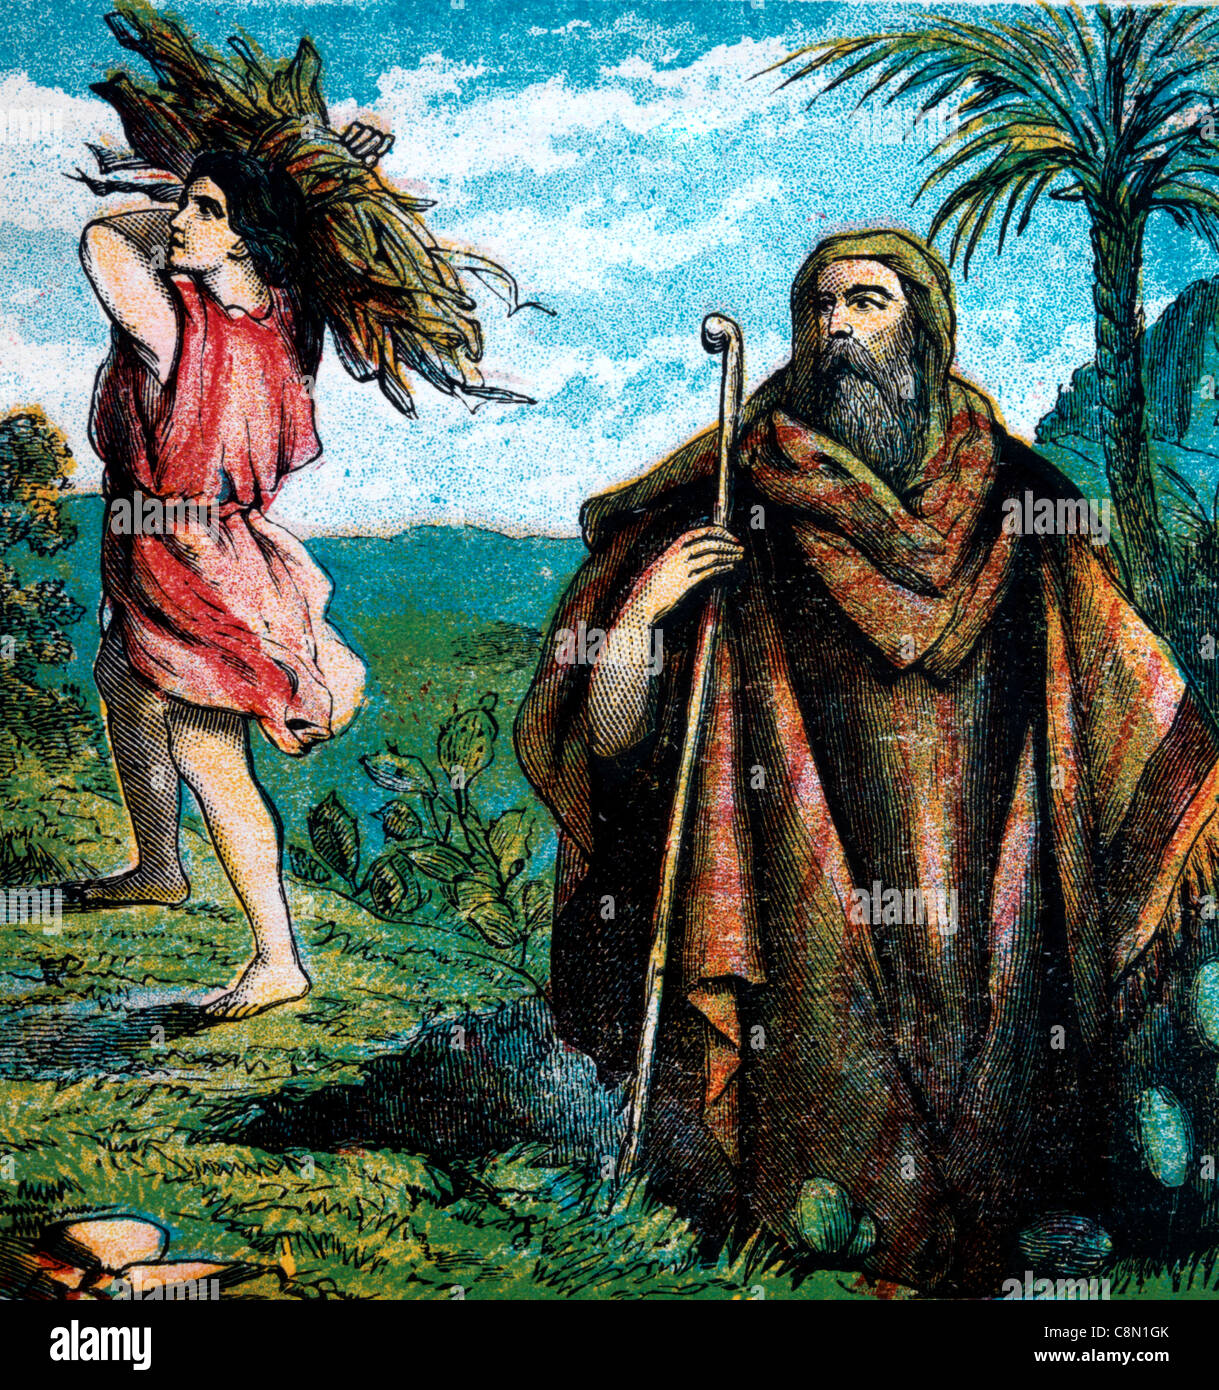 Bible Stories - Illustration Of Isaac Carrying The Wood Up The Mountain With Abraham Genesis xxii 1-19 - Stock Image